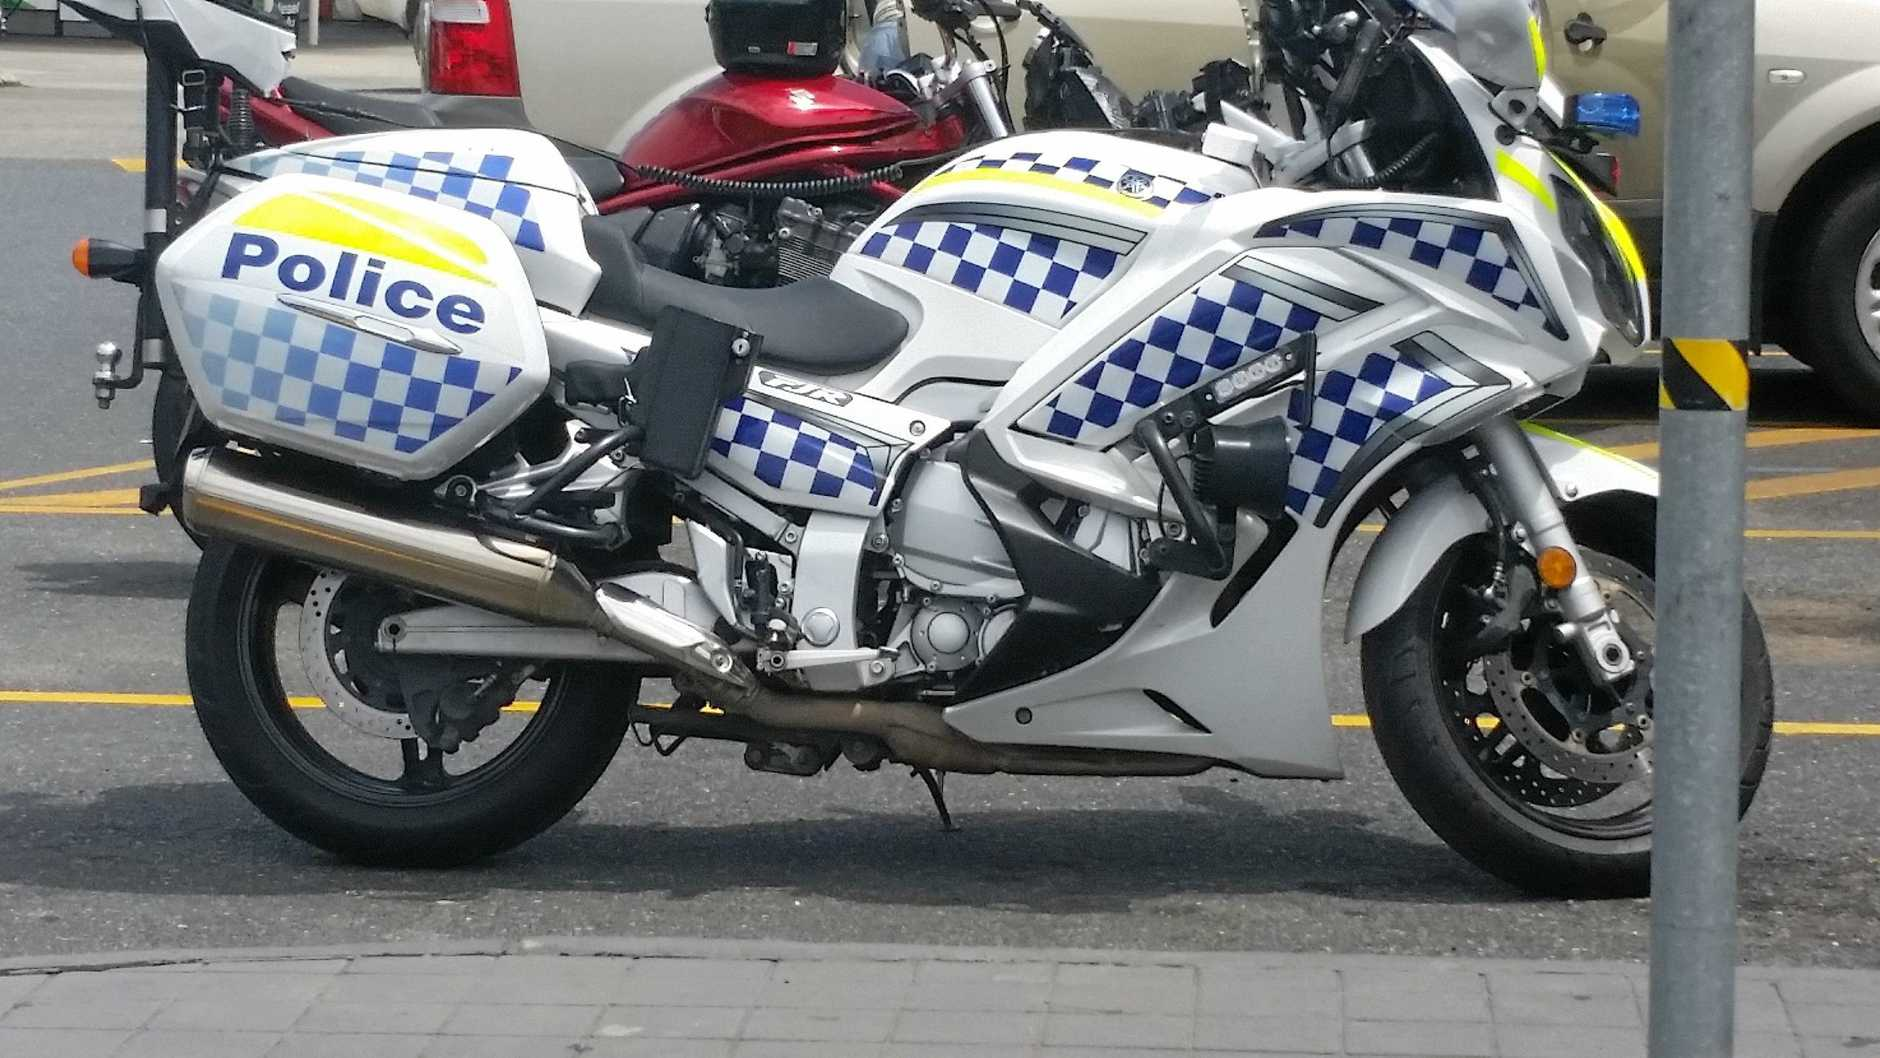 Mark Whittaker's police motorcycle prior to the accident.